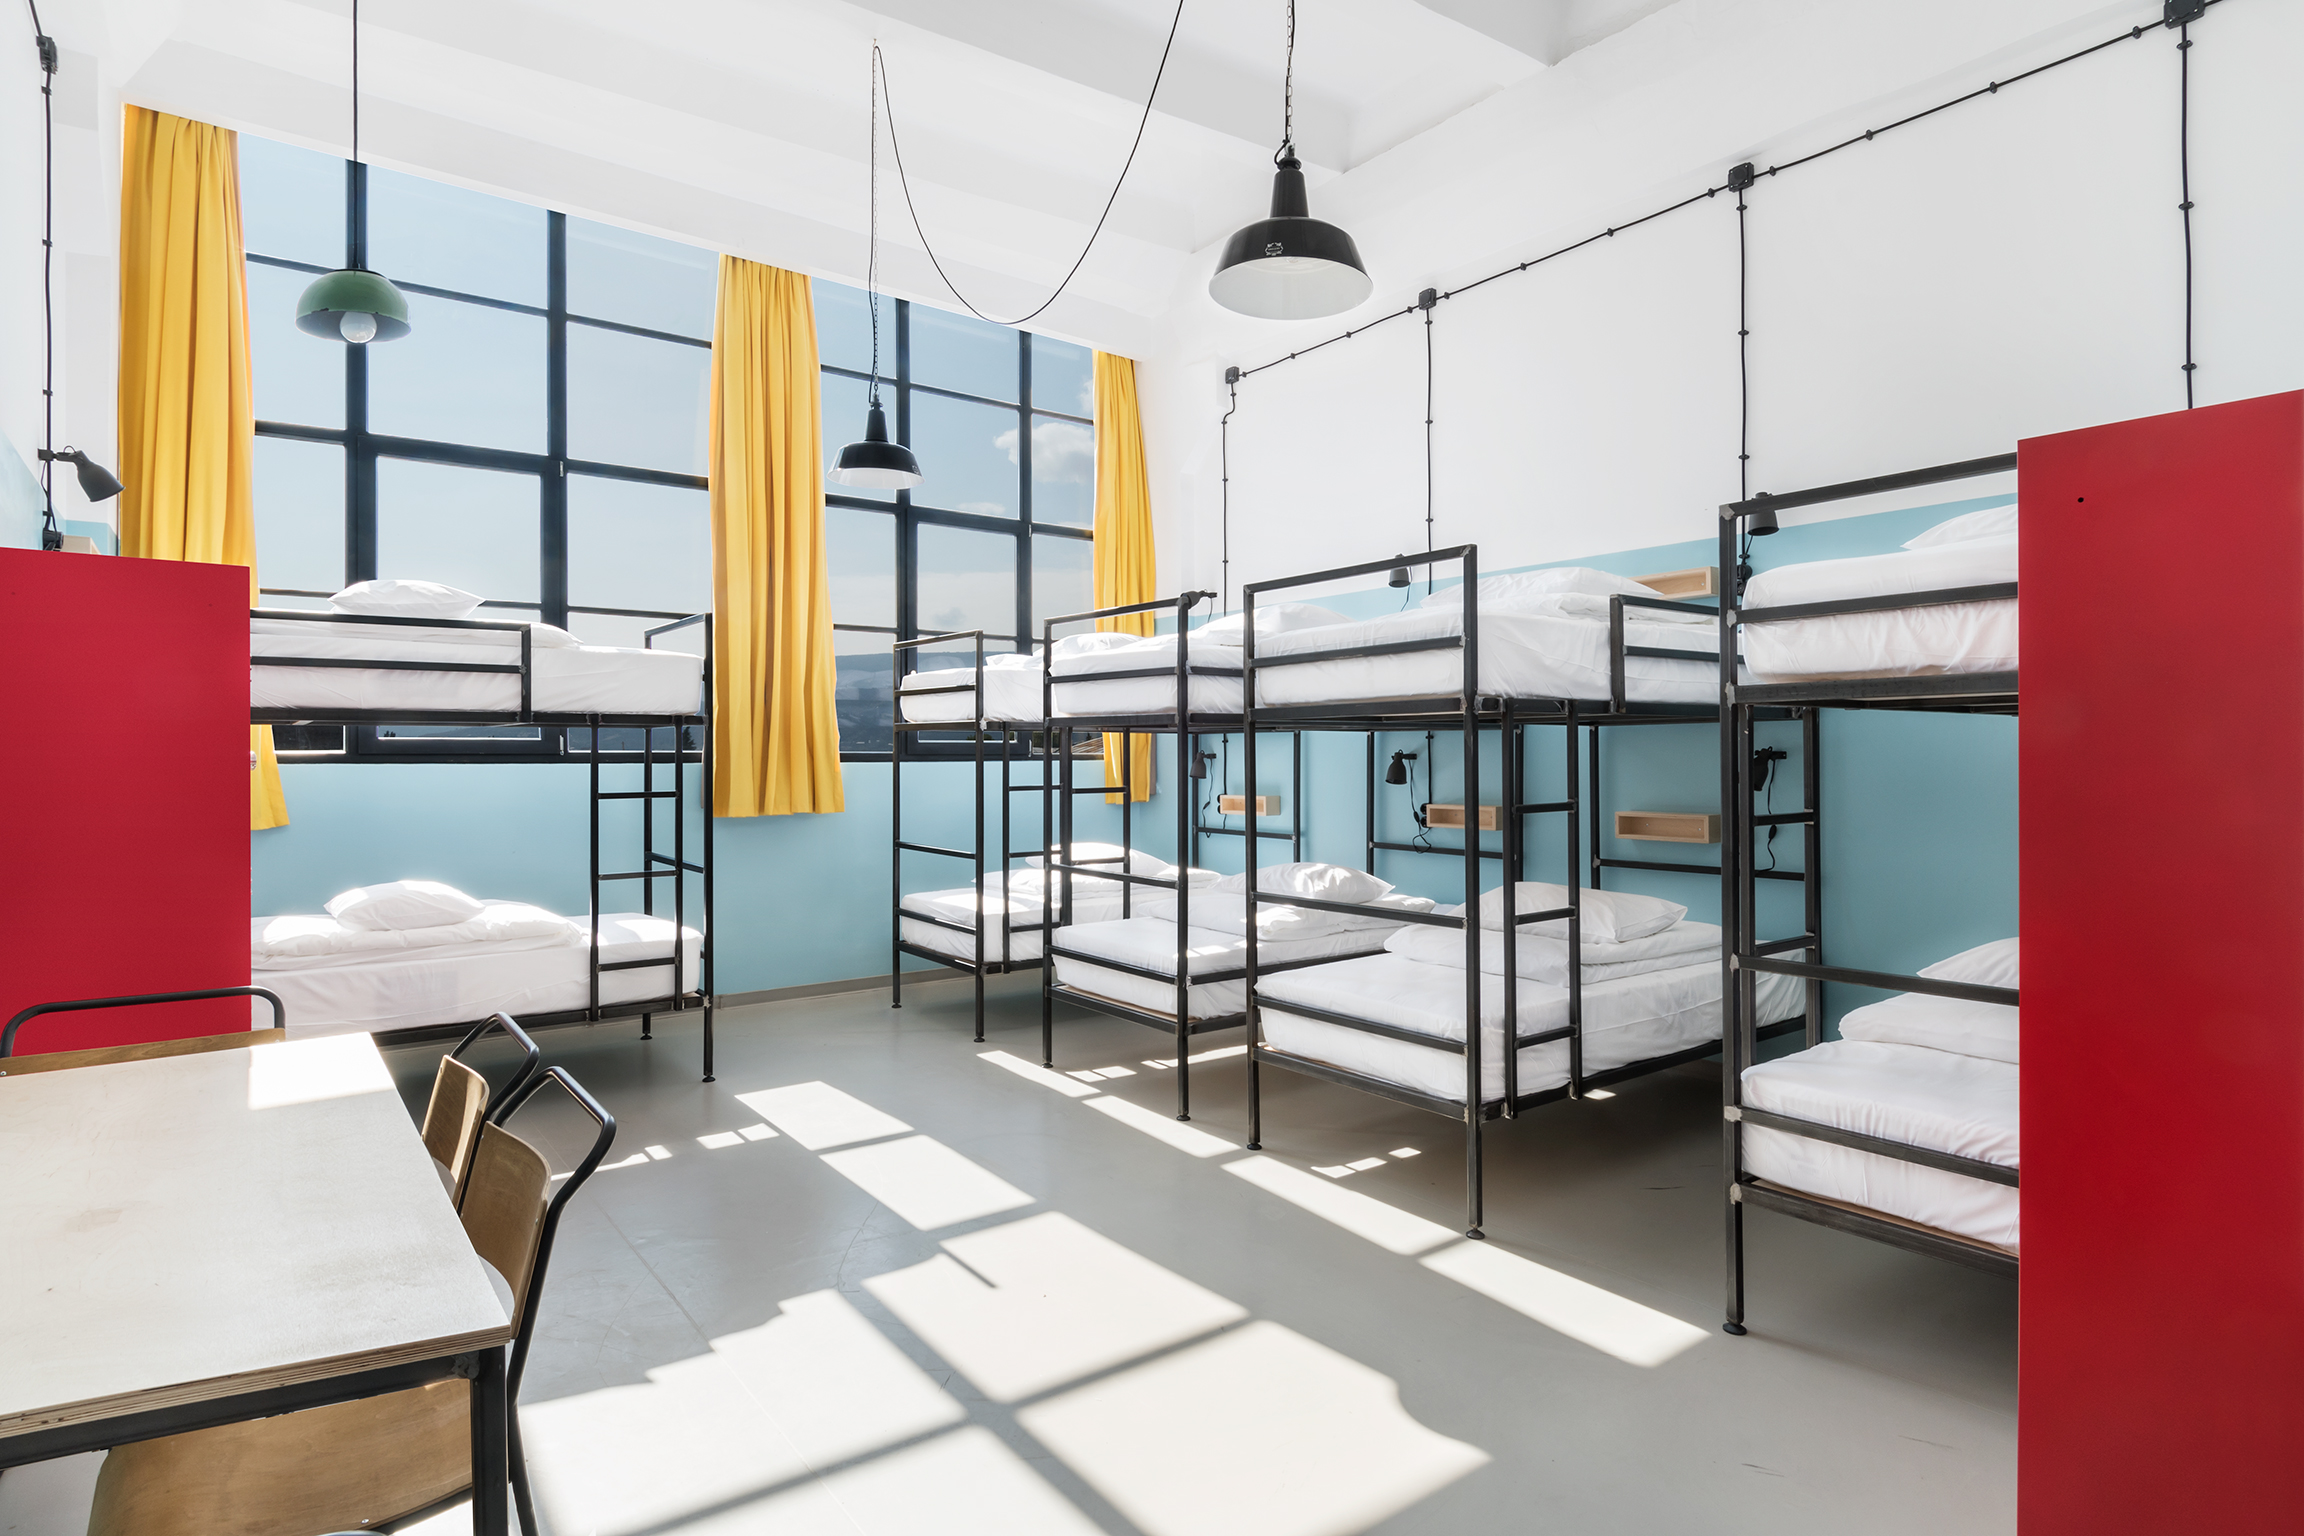 10 bed dorm at Fabrika hostel